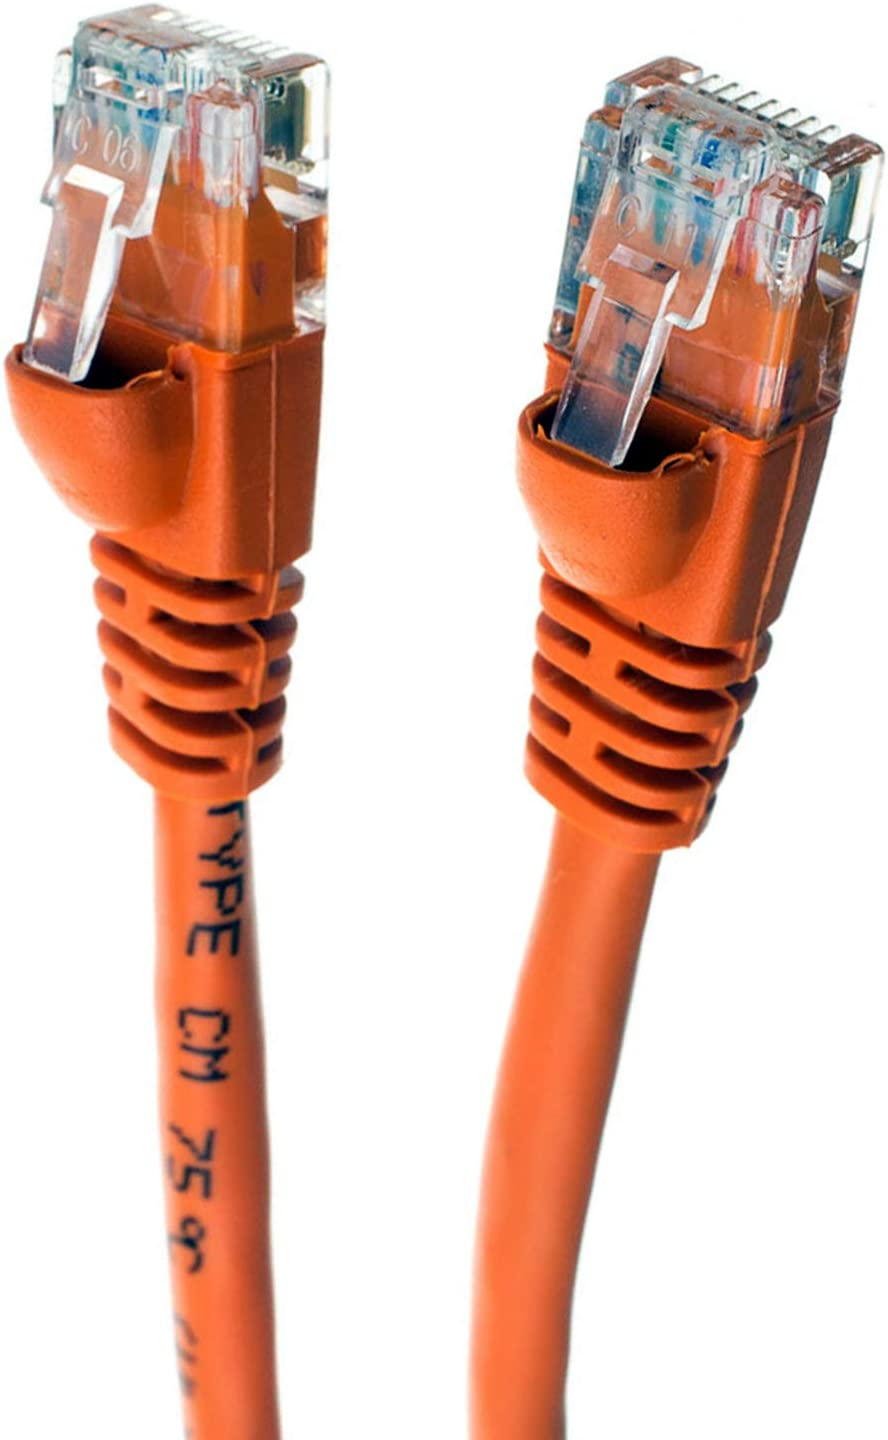 UTP Computer Network Cable with Snagless Connector Cat5e Ethernet Cable GOWOS 5-Pack RJ45 10Gbps High Speed LAN Internet Patch Cord 75 Feet - Orange Available in 28 Lengths and 10 Colors